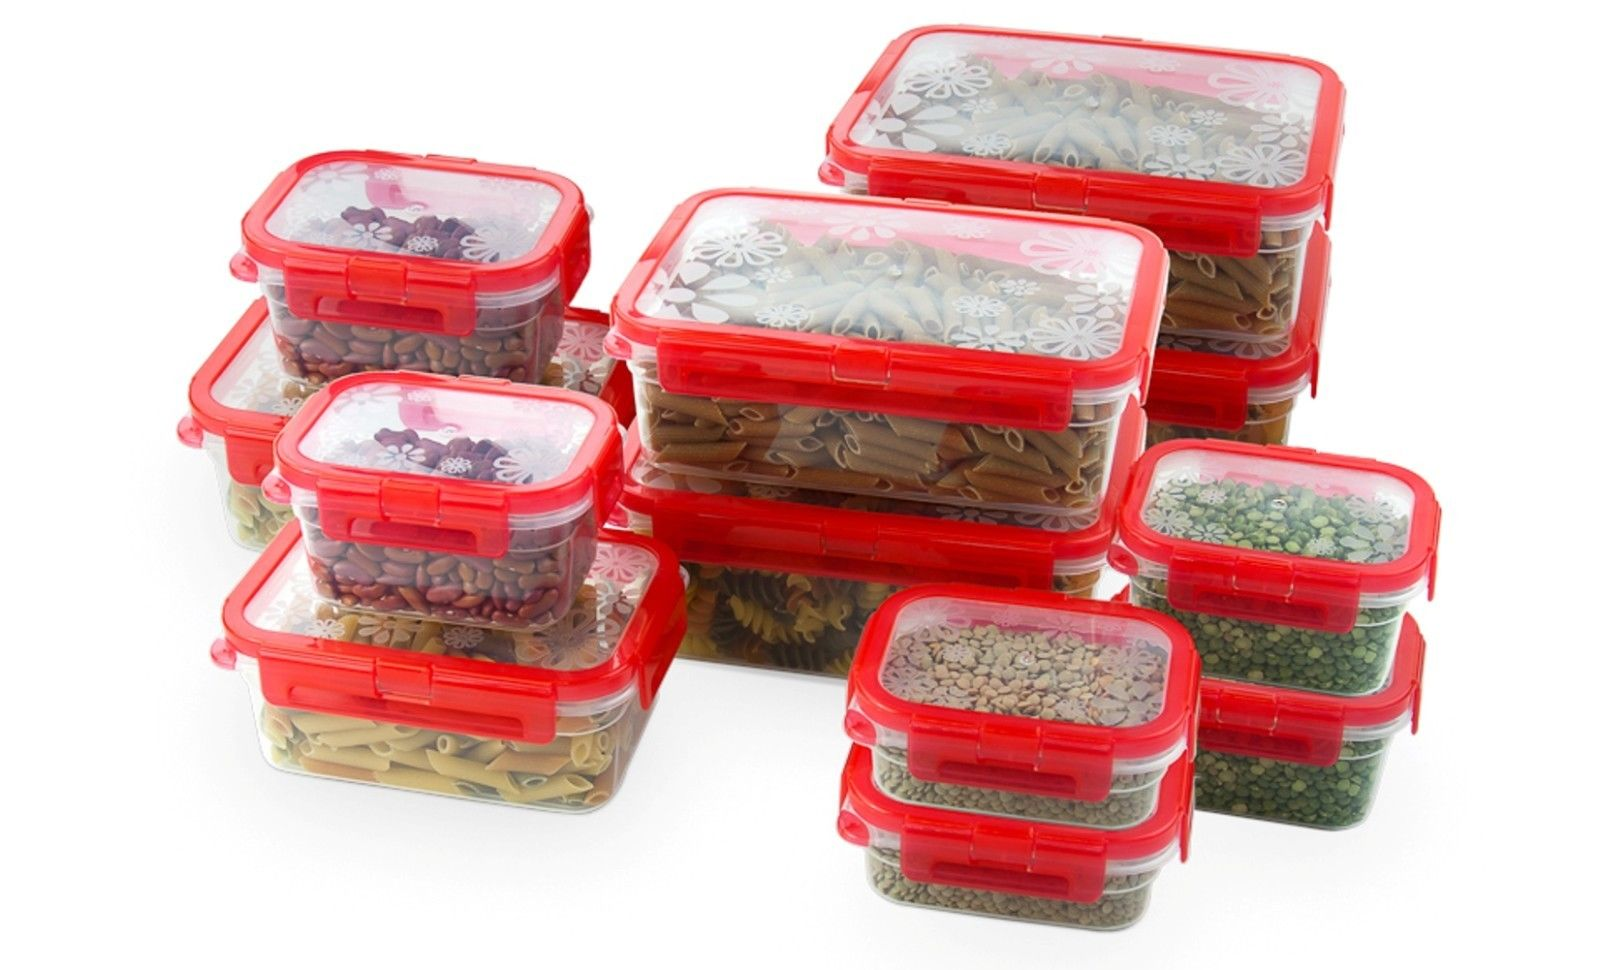 12 Pcs Plastic Food Storage Containers Set With Air Tight Locking Lids 1